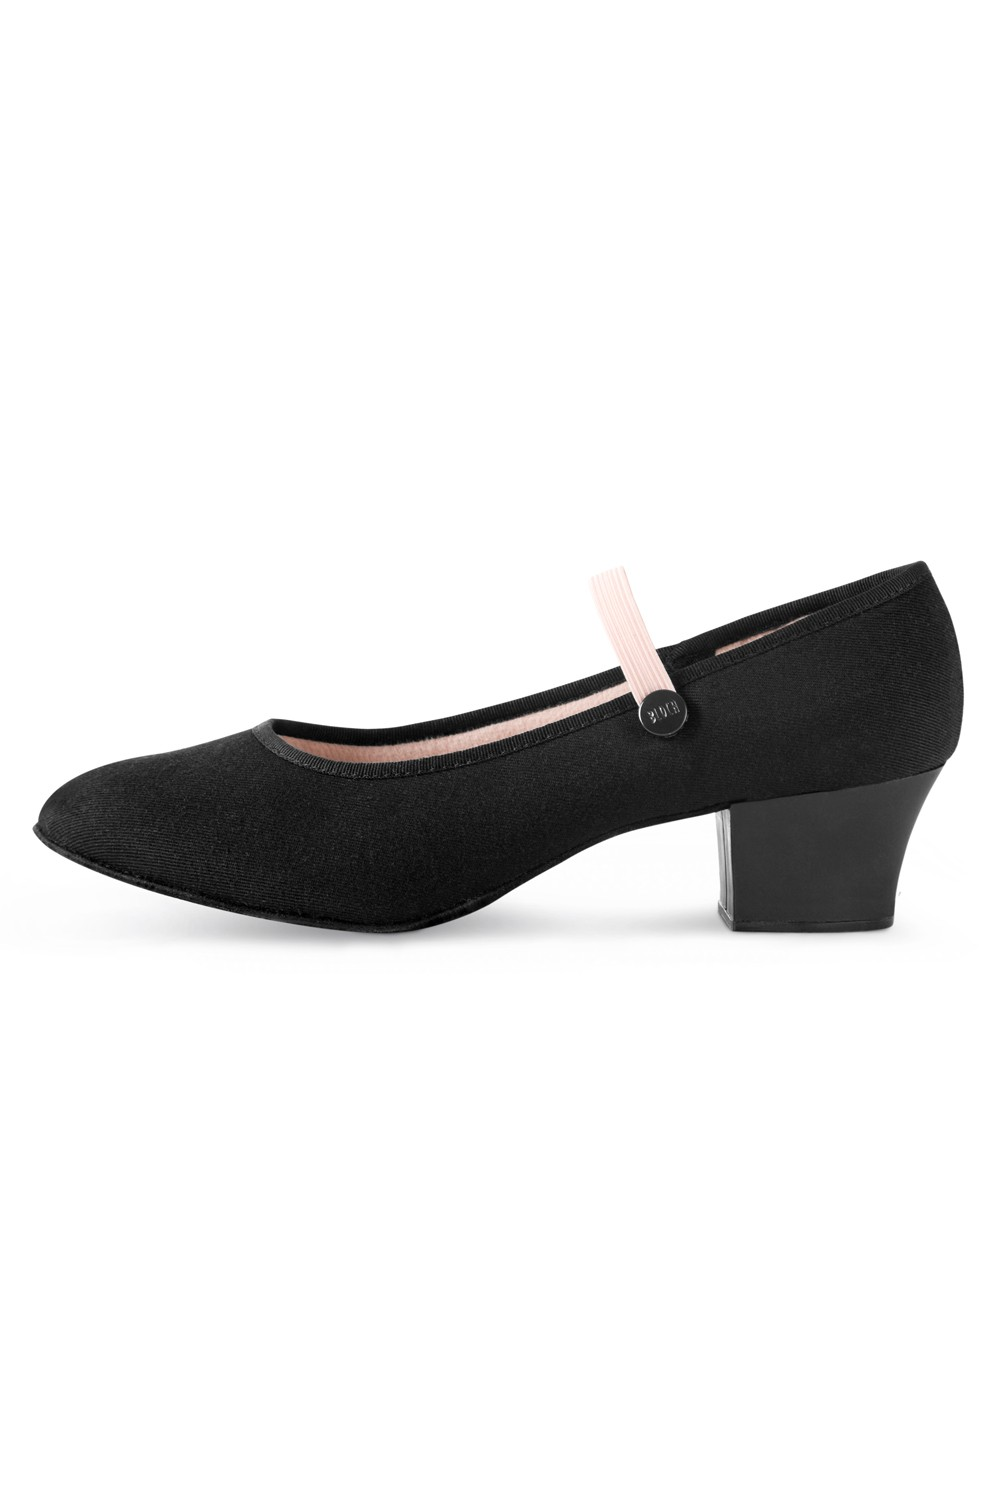 Tempo Accent - Donna Women's Character Shoes